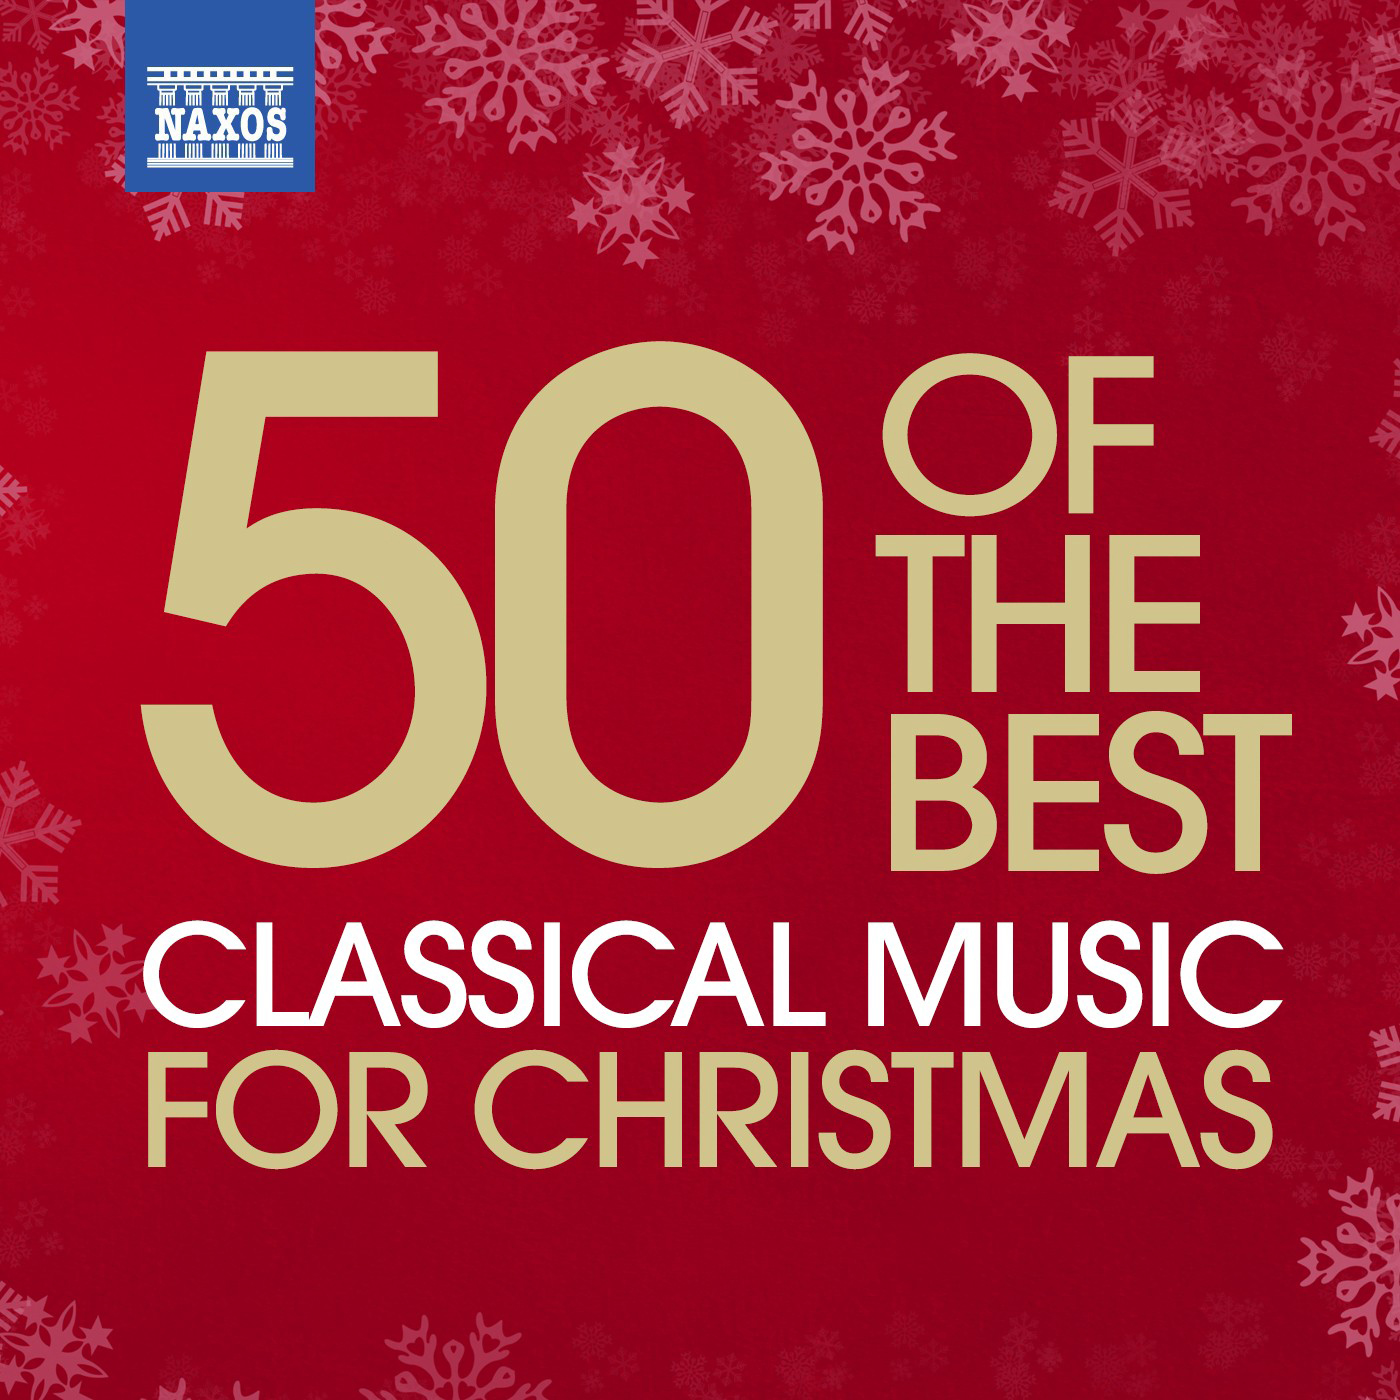 50 of the best classical music for christmas - Christmas Classical Music